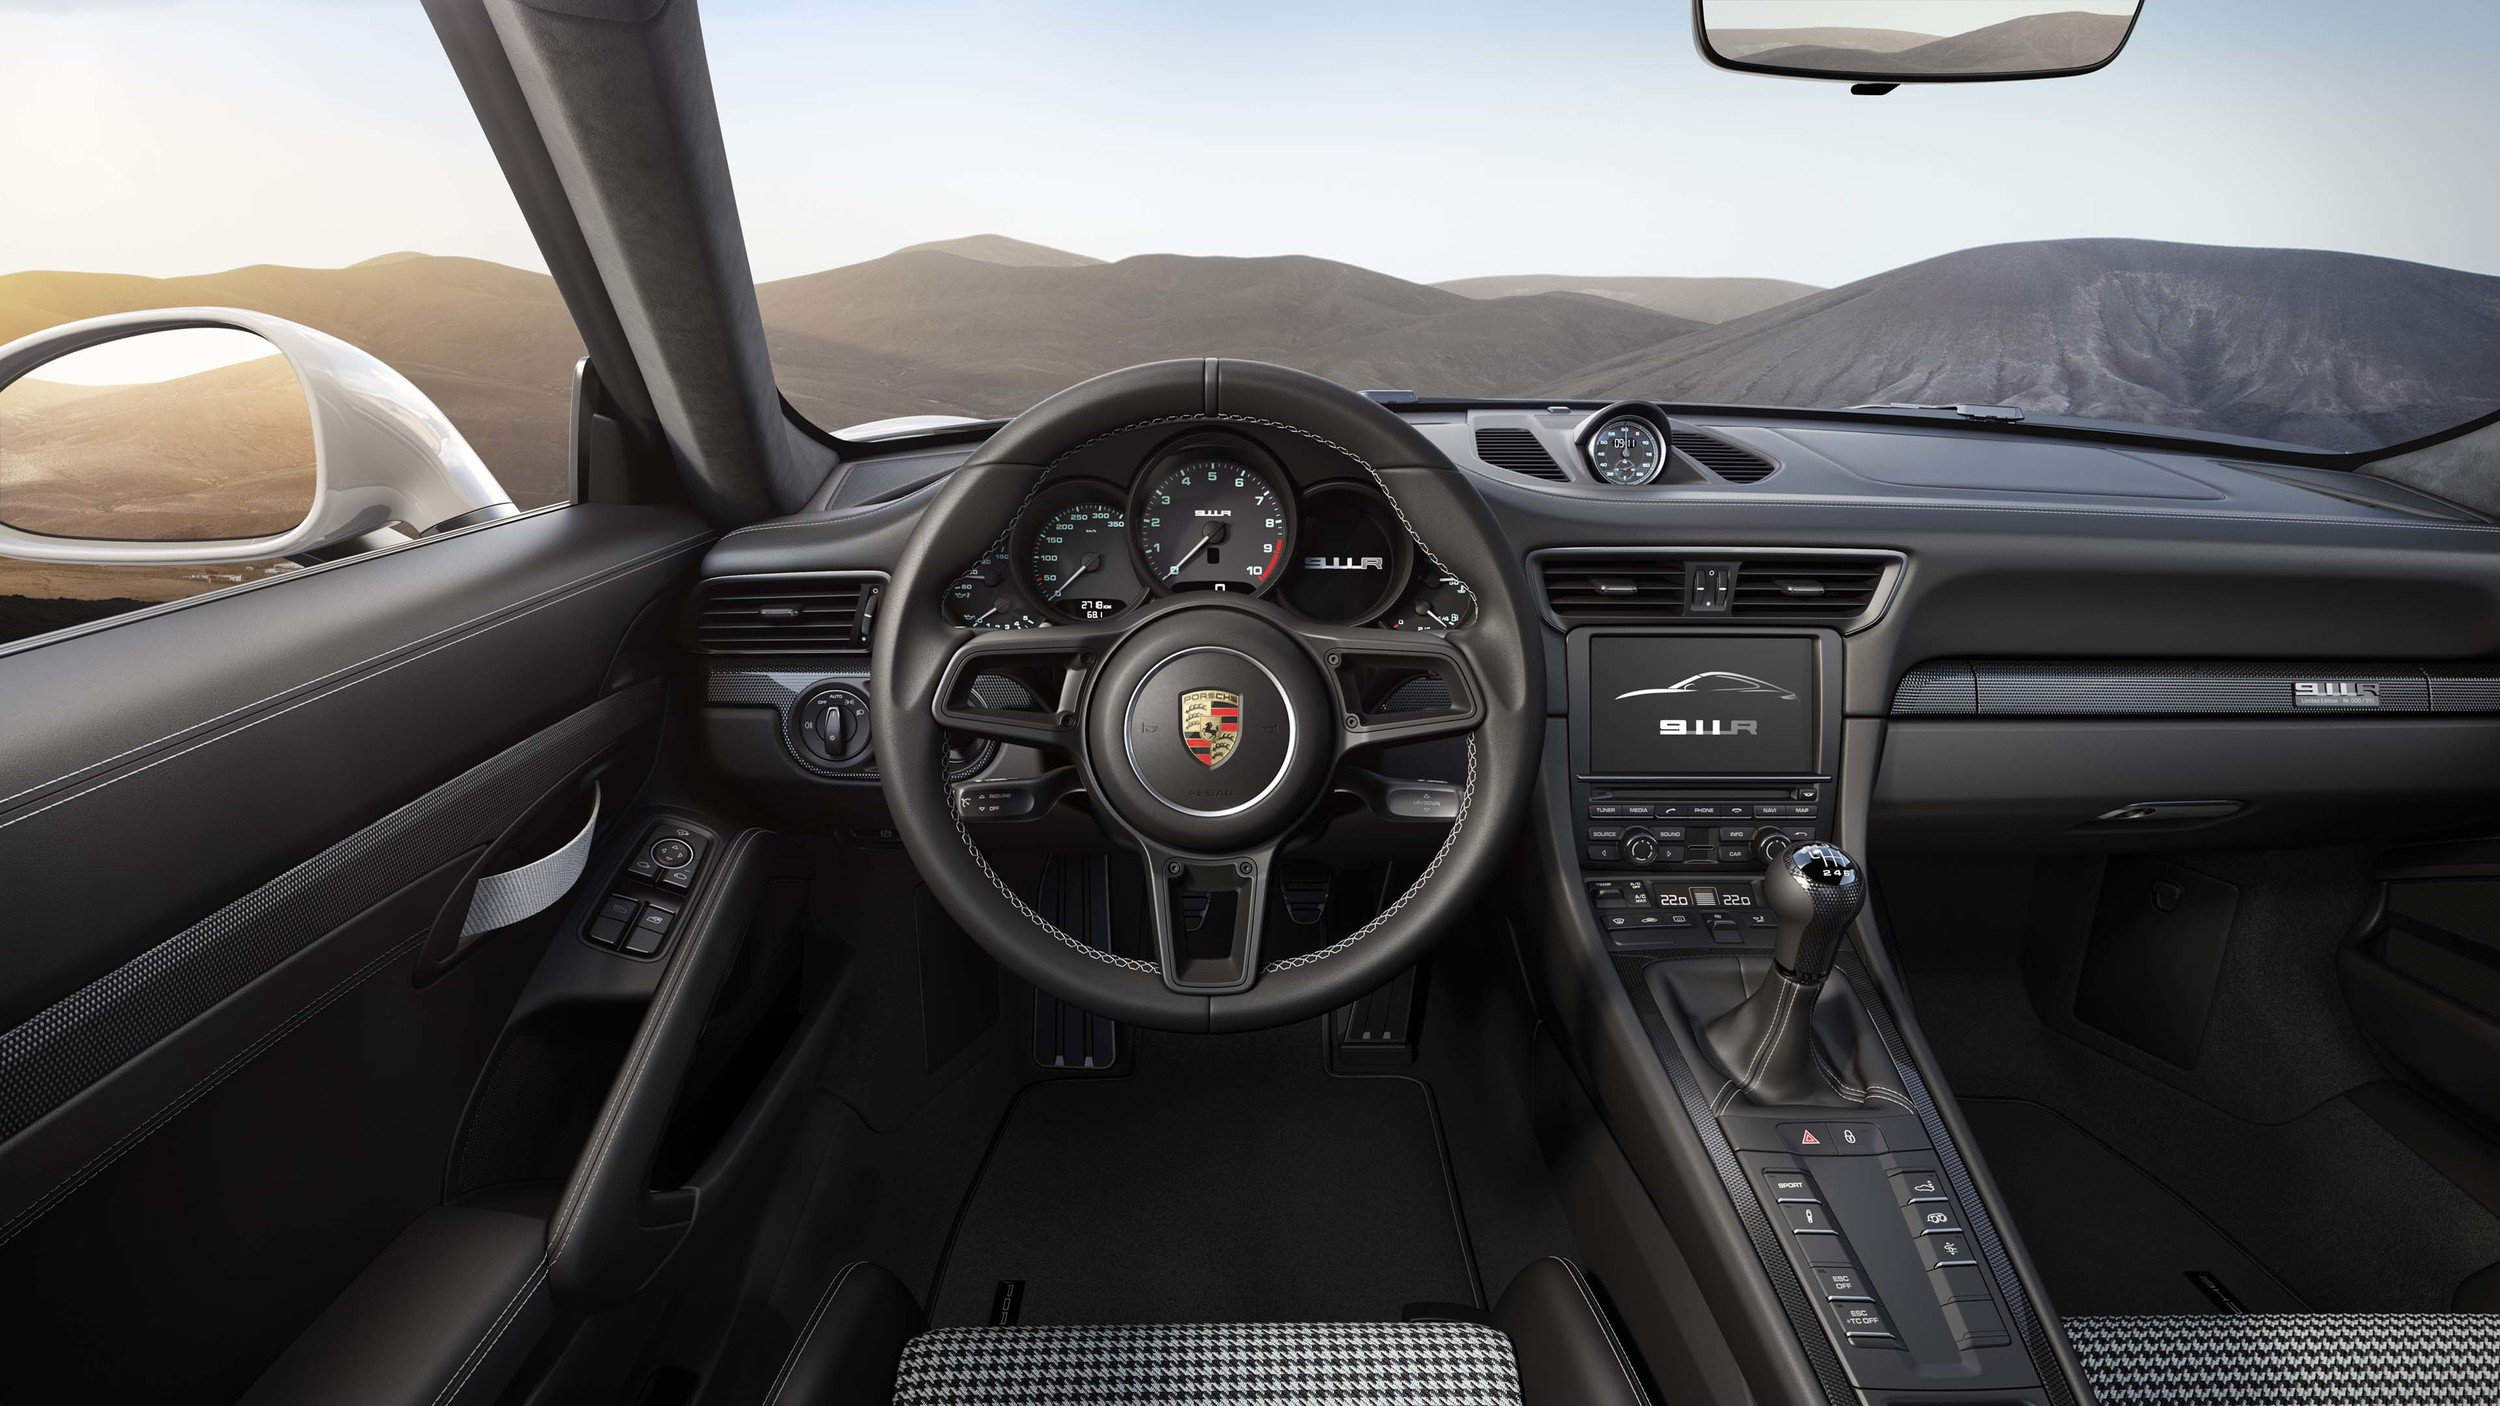 Porsche: Manual Transmissions and Hybrids Don't Mix